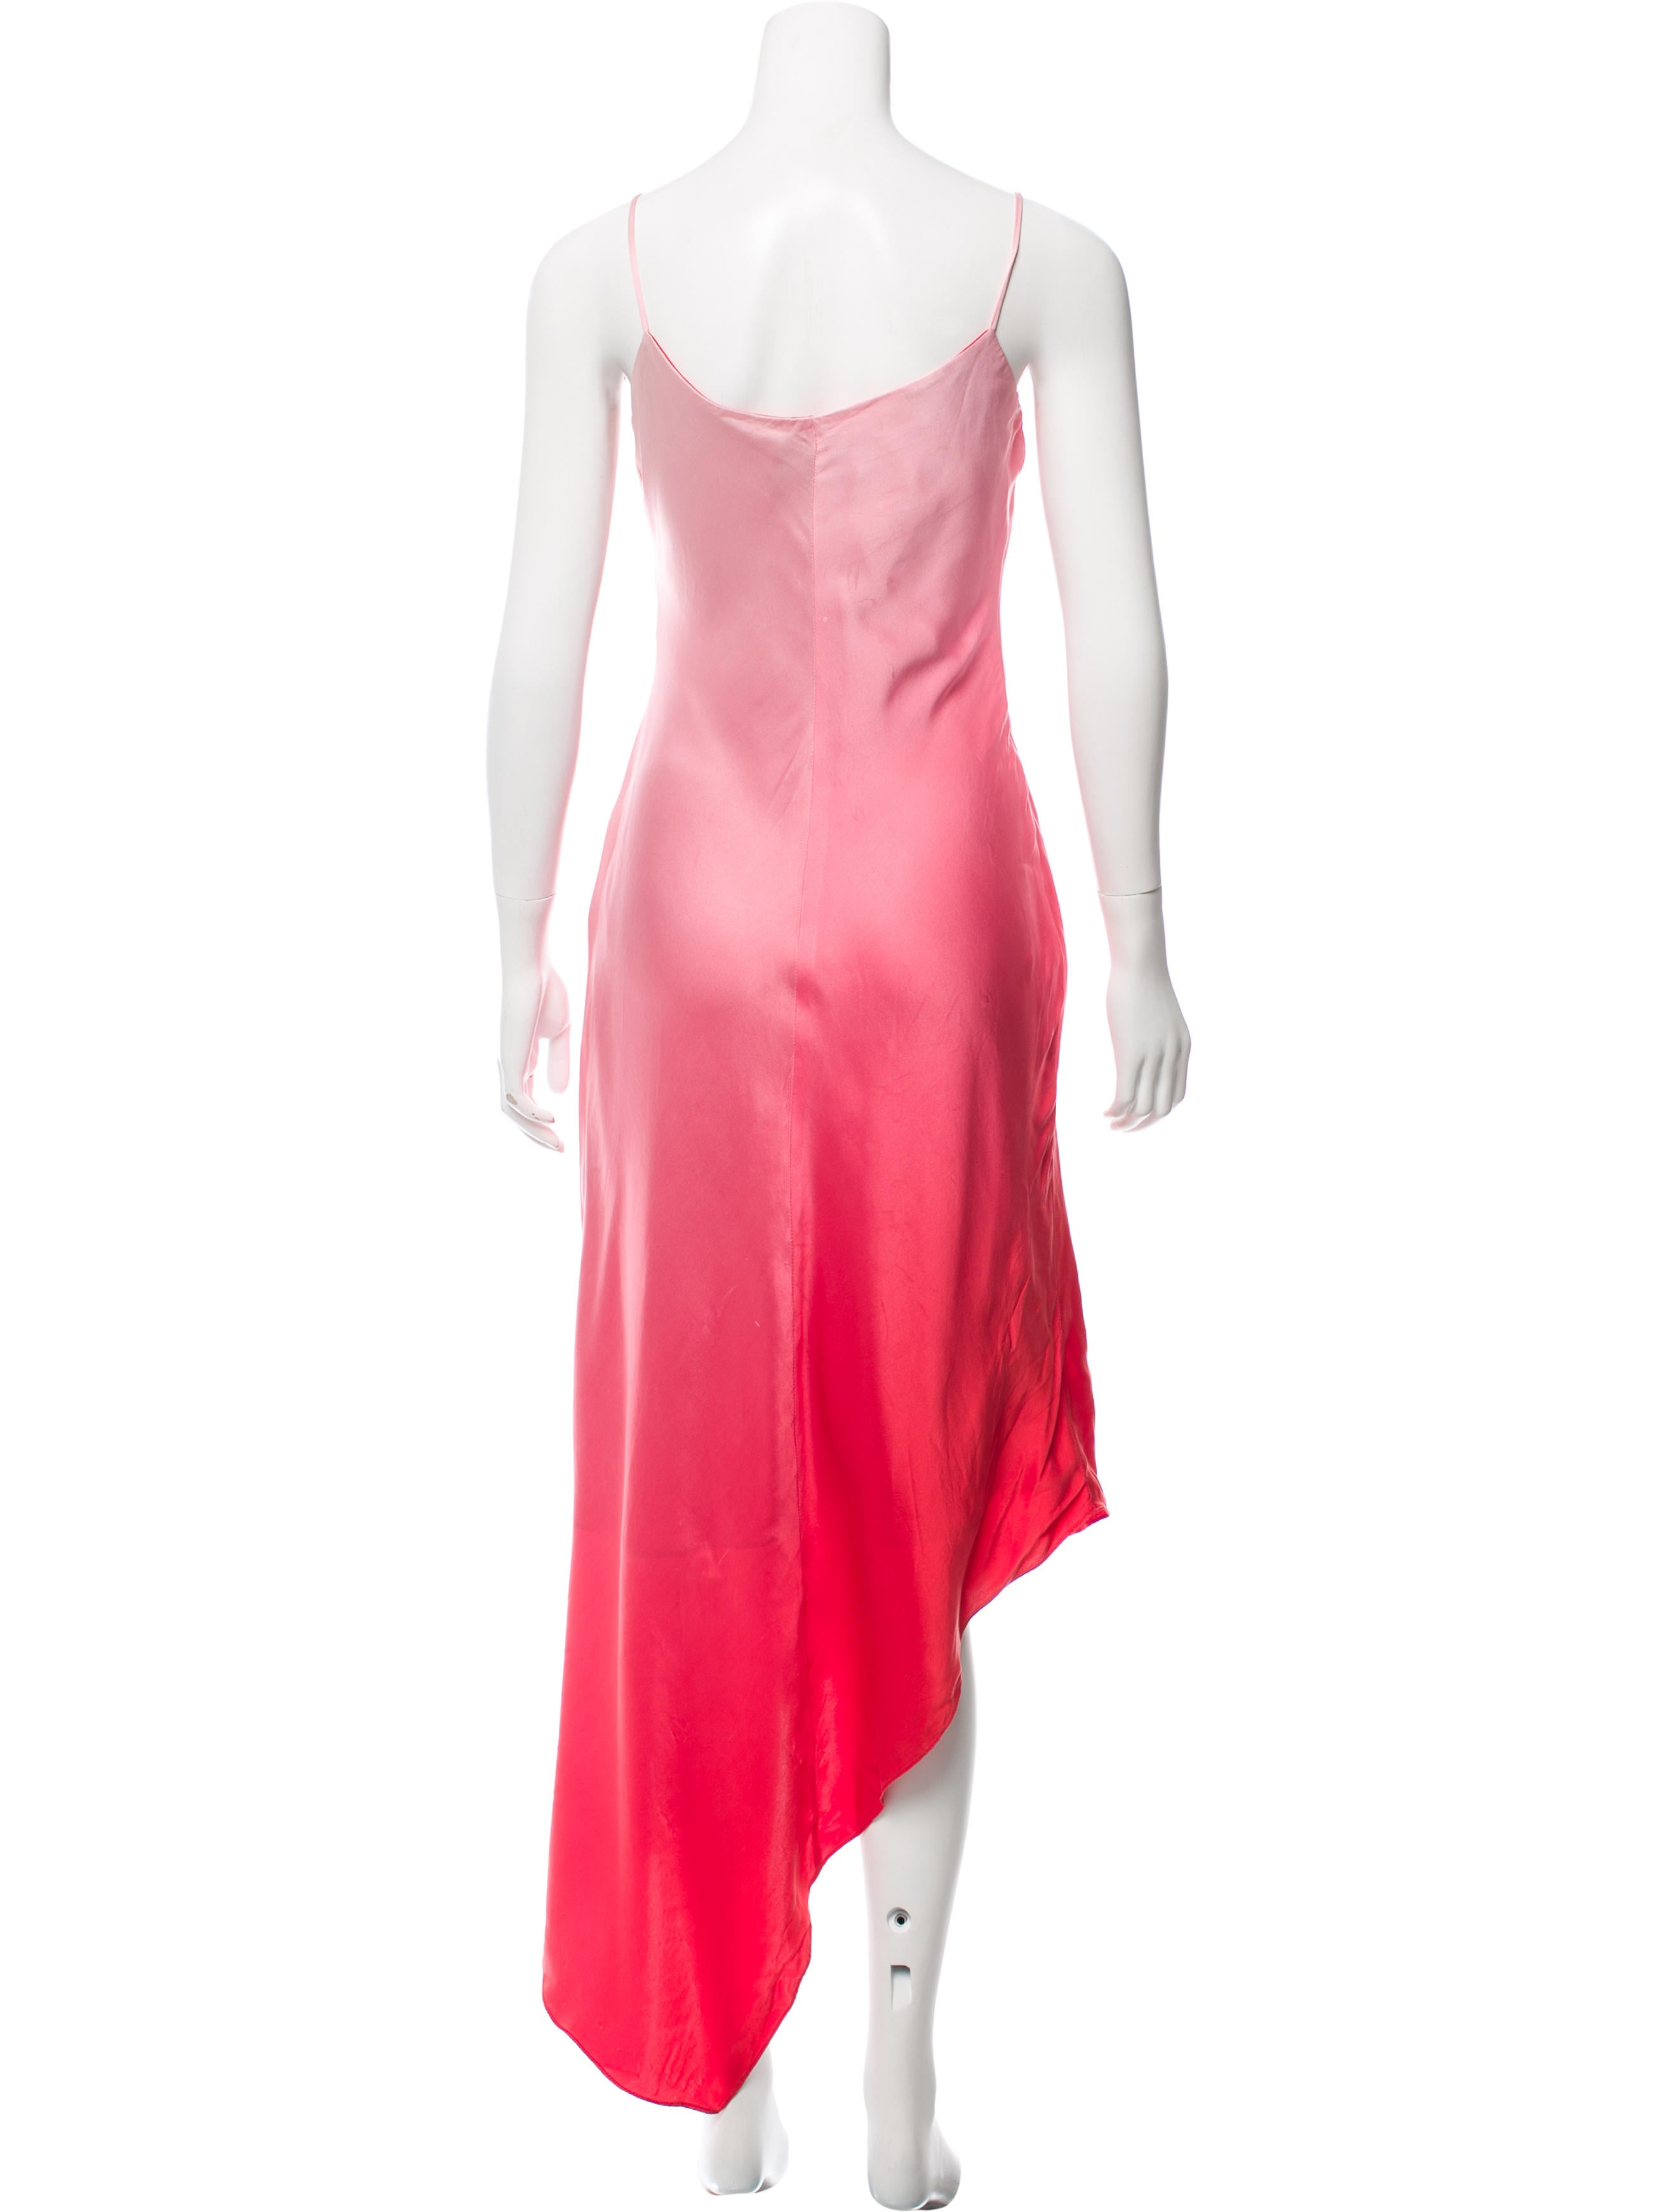 David Meister Silk Ombré Dress - Clothing - WDM25155 | The RealReal